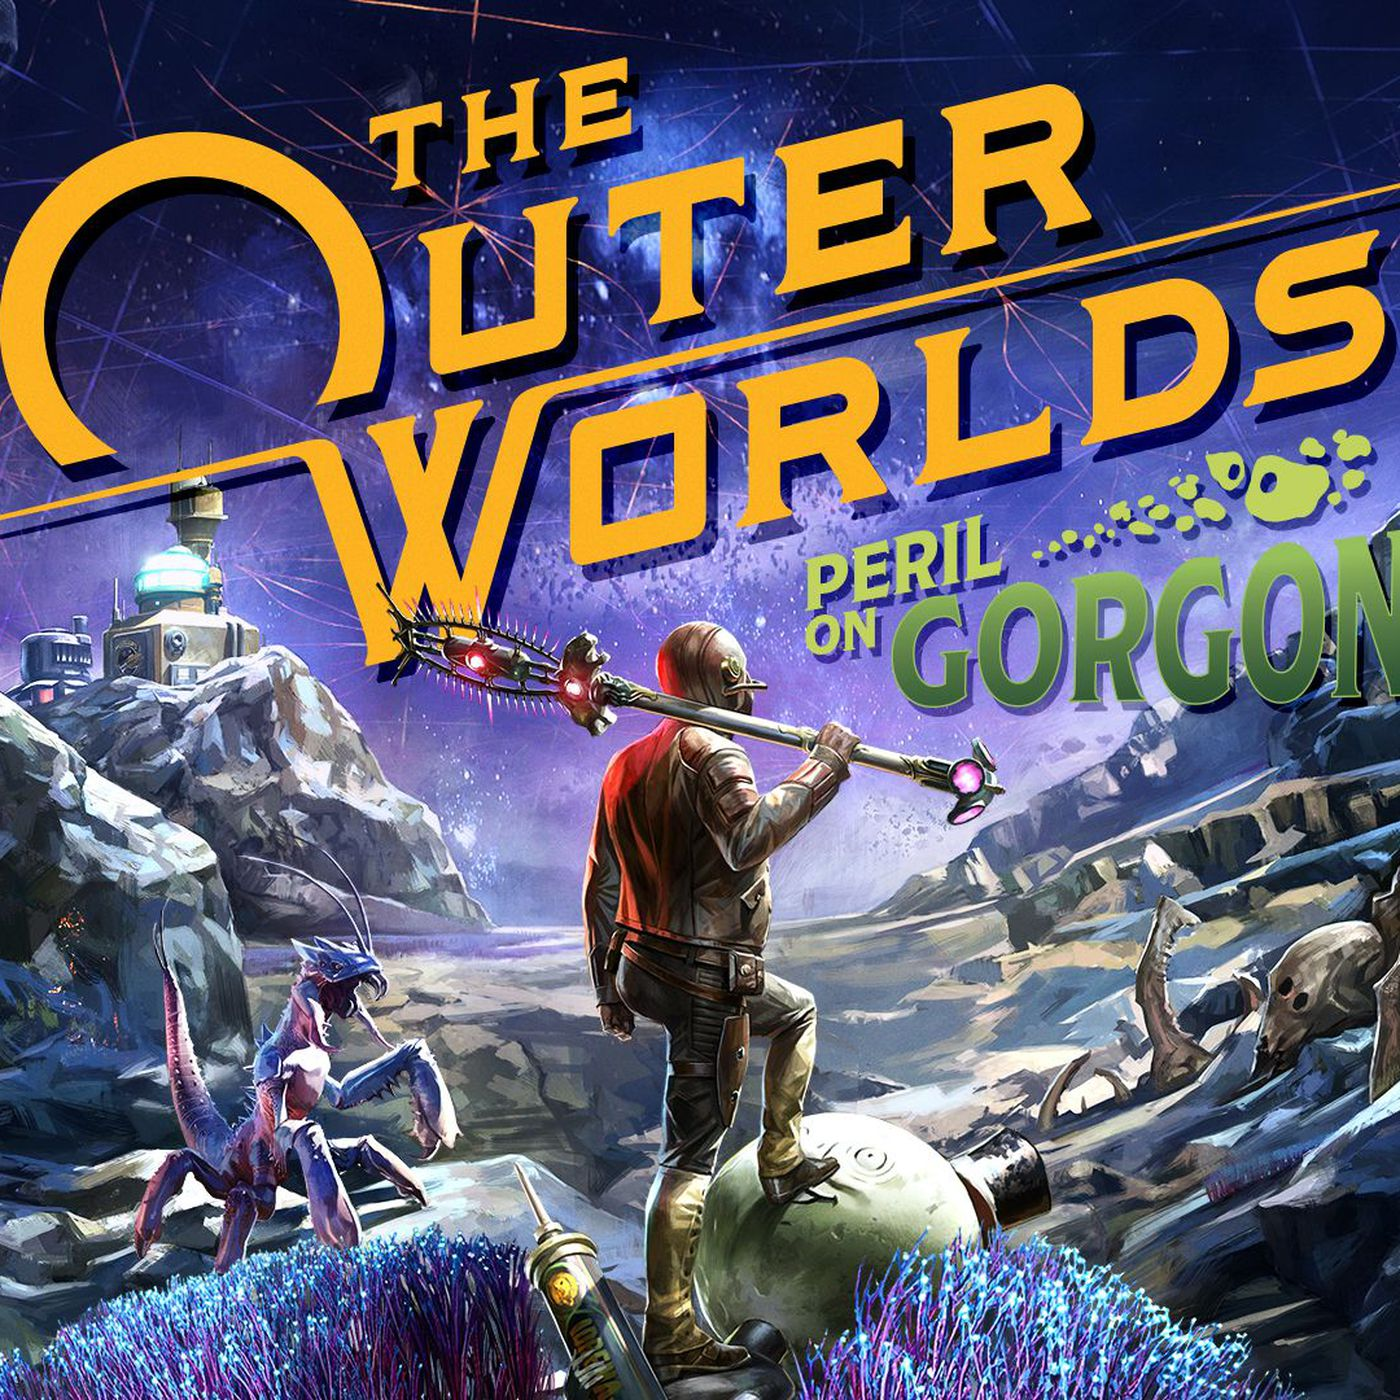 The Outer Worlds First Dlc Adds A New Planet With Peril On Gorgon